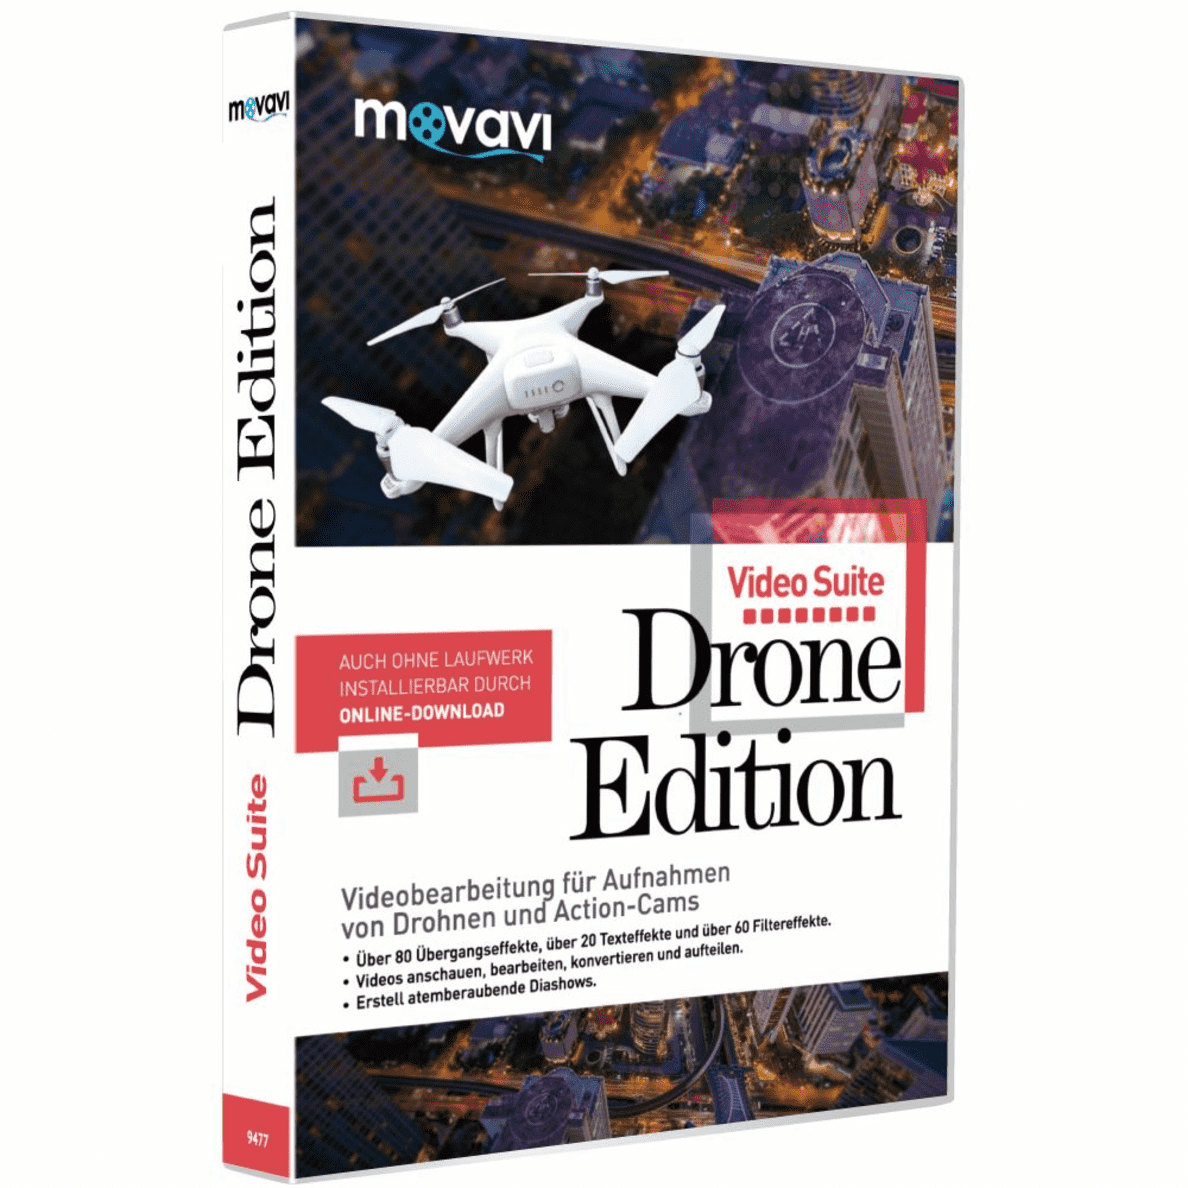 VIDEO SUITE DRONE EDITION auf CD-ROM